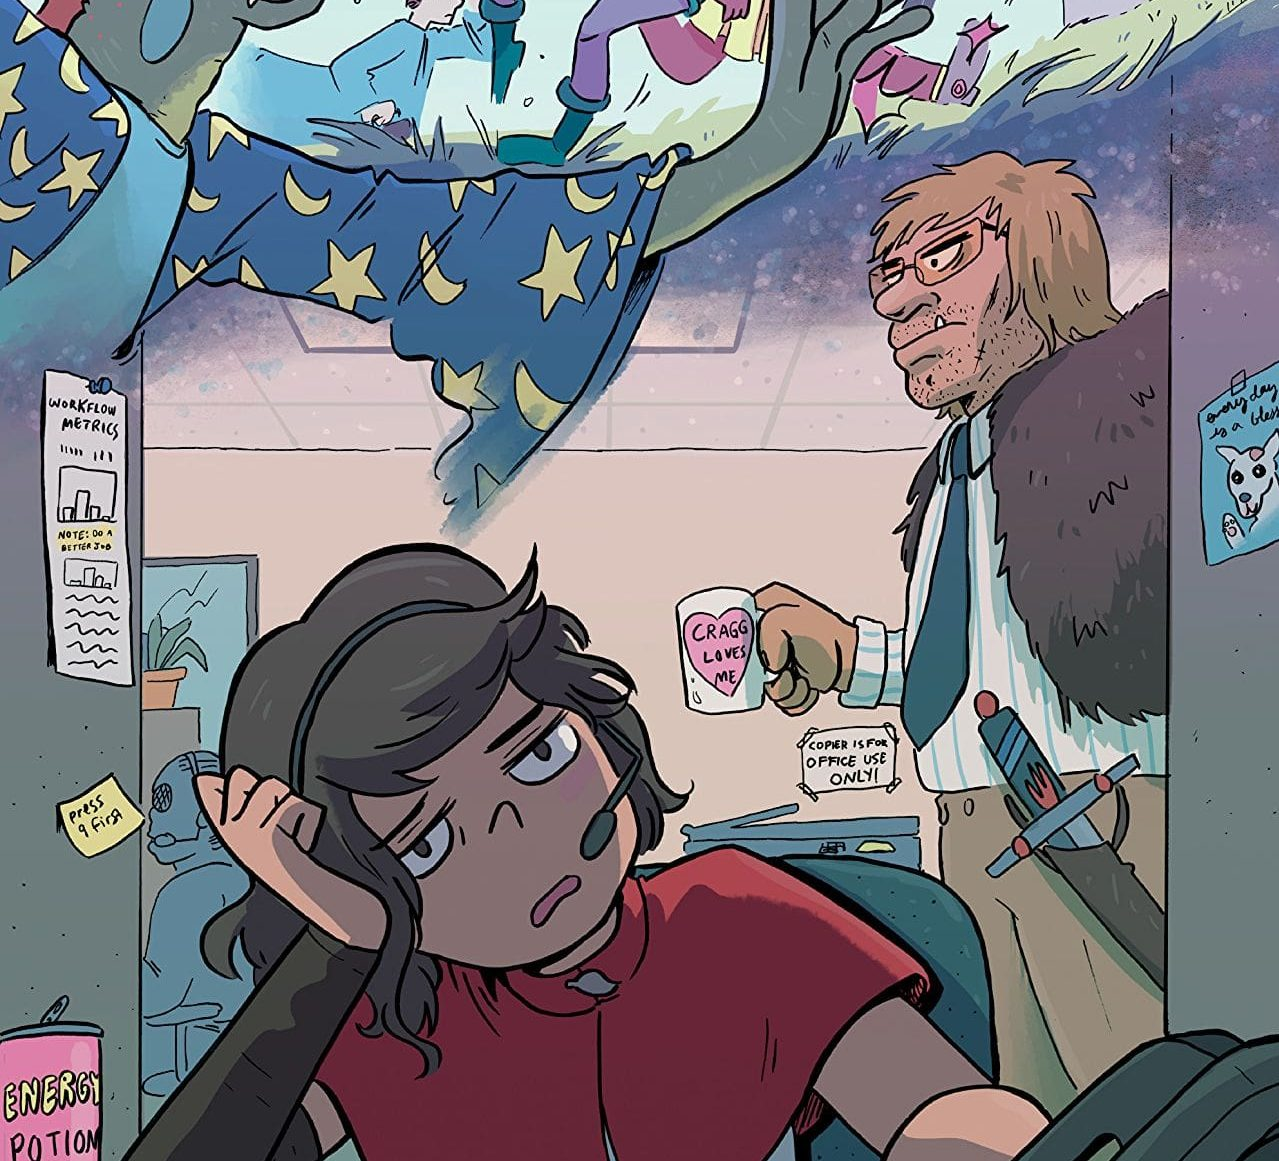 Modern Fantasy Vol. 1 review: Fighting for your best self